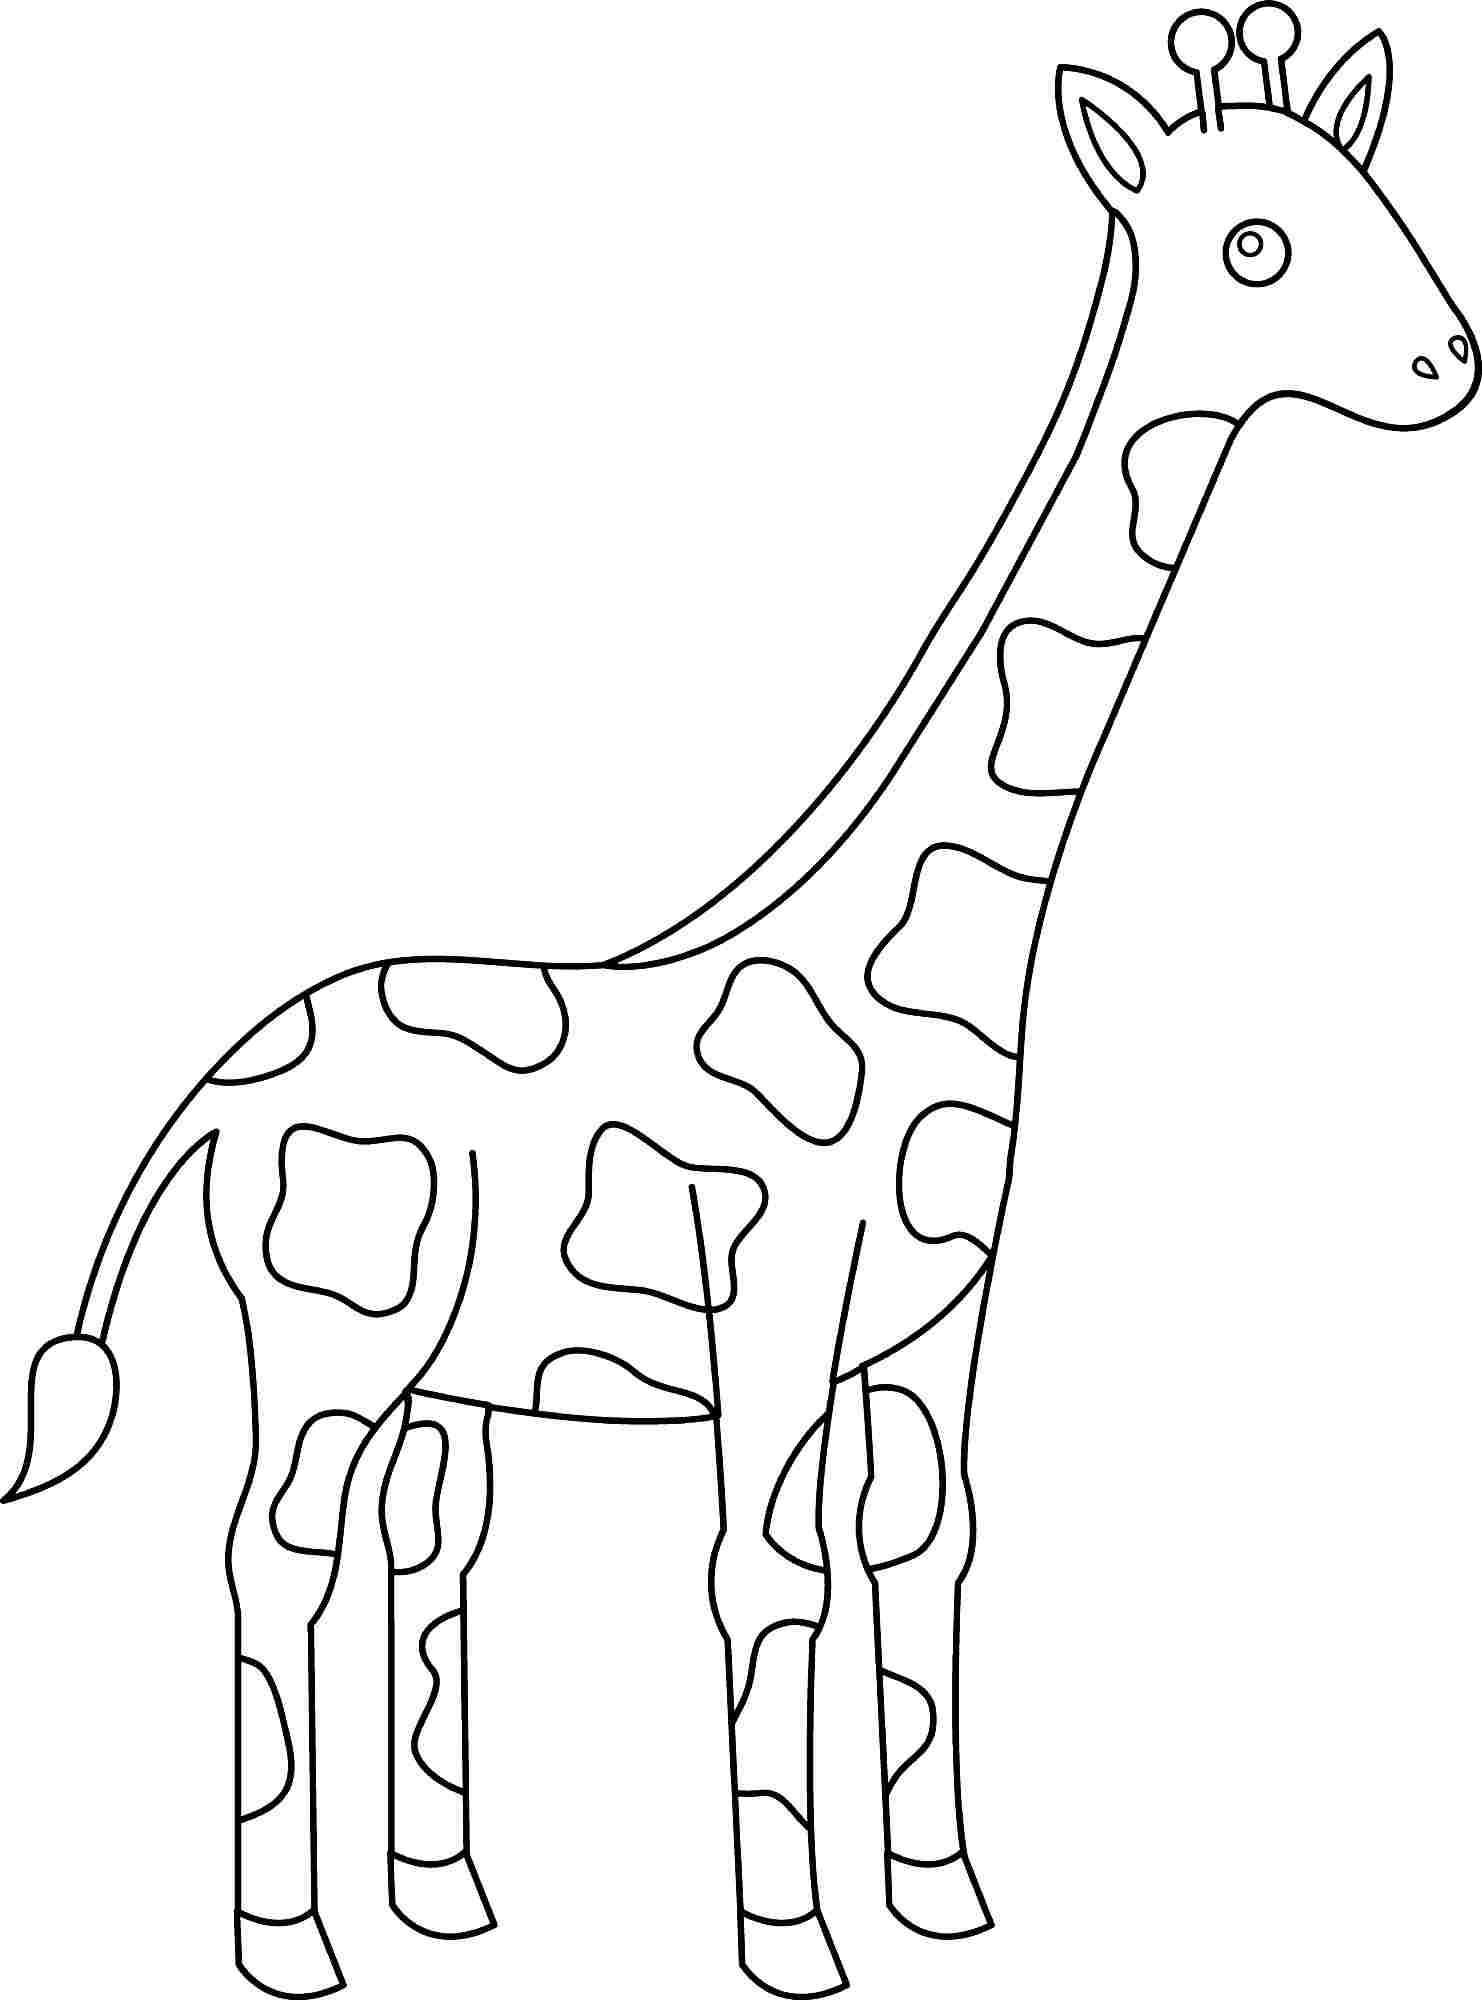 Generous Giraffe Cut Out Template Images - Entry Level Resume ...